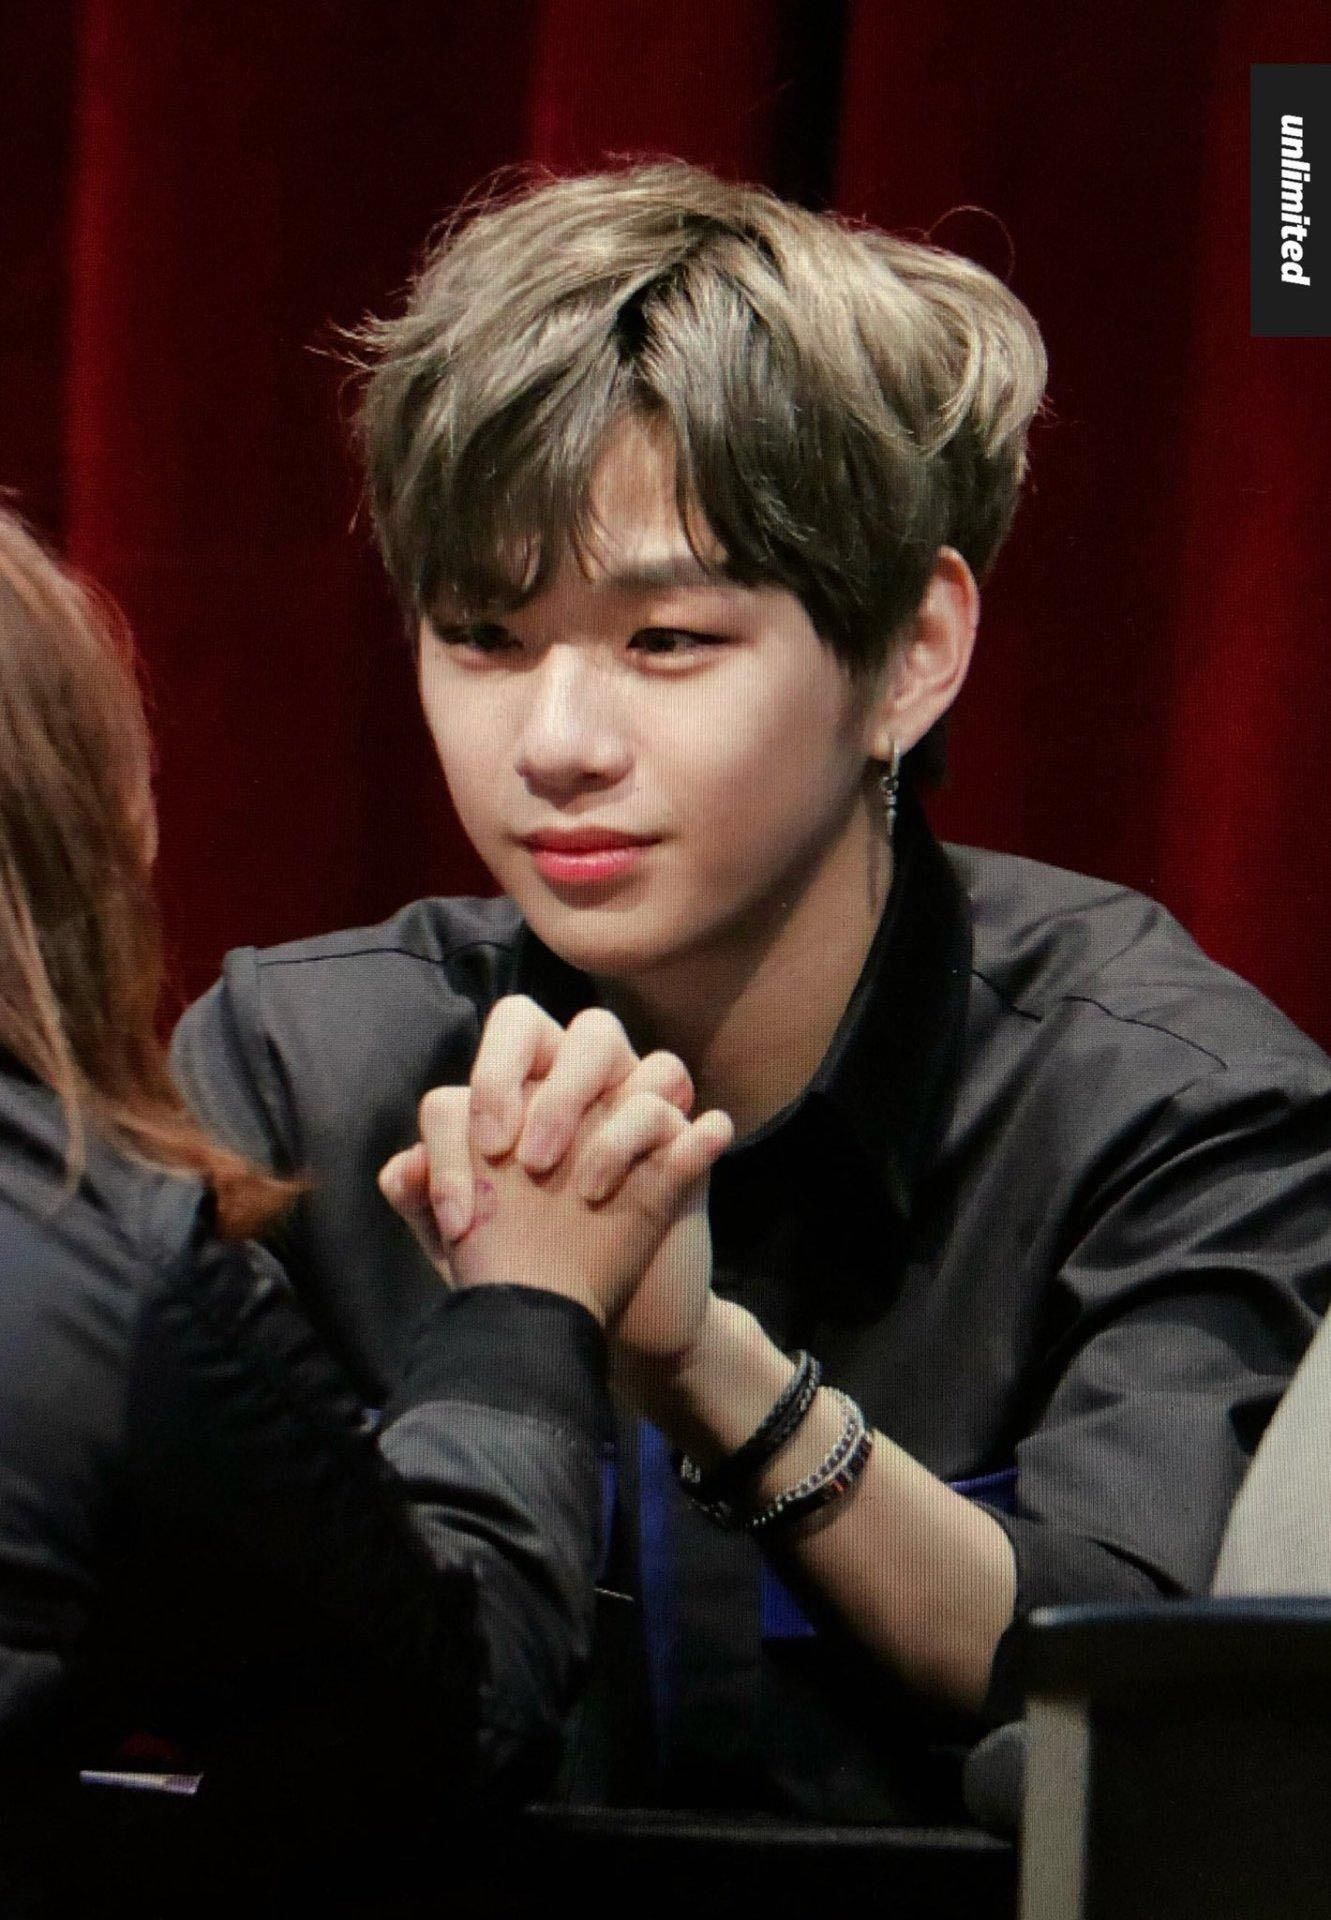 Fans Notice BTS Suga and Kang Daniel Have A Unique Way Of Holding